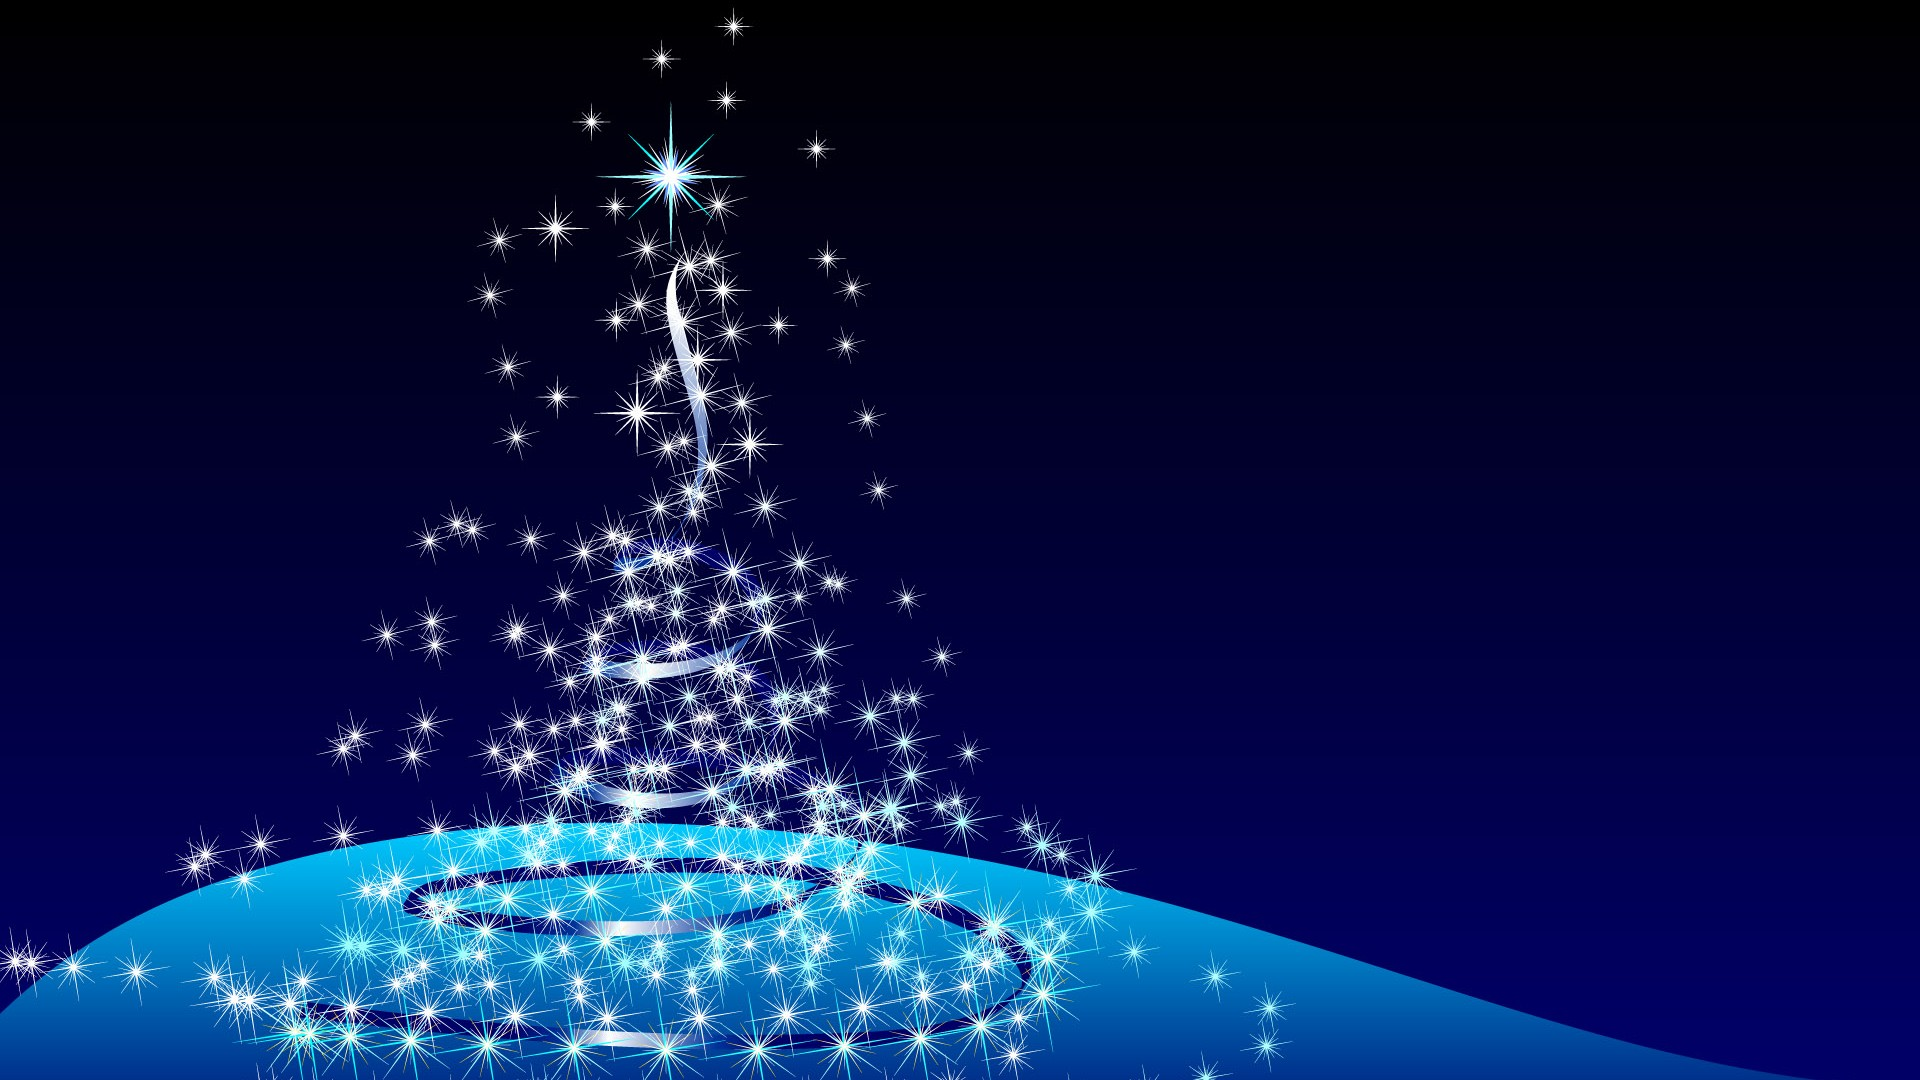 Sparkly Christmas Wallpaper Hd Wallpapers